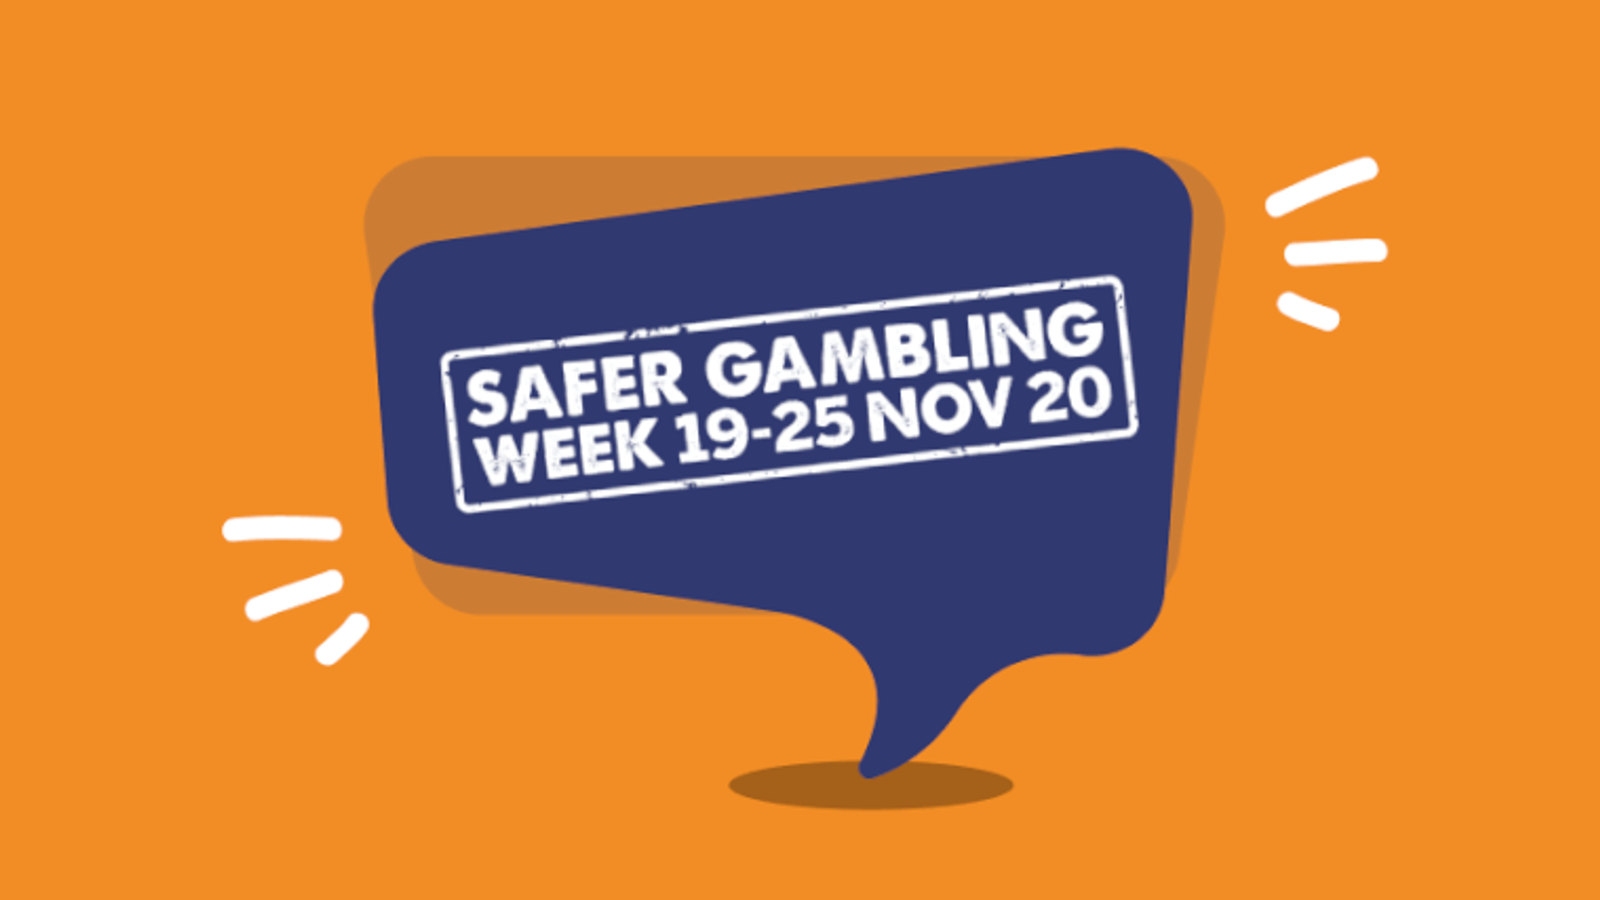 what-is-safer-gambling-week-sky-sports-news-bryan-swanson-answers-some-key-questions